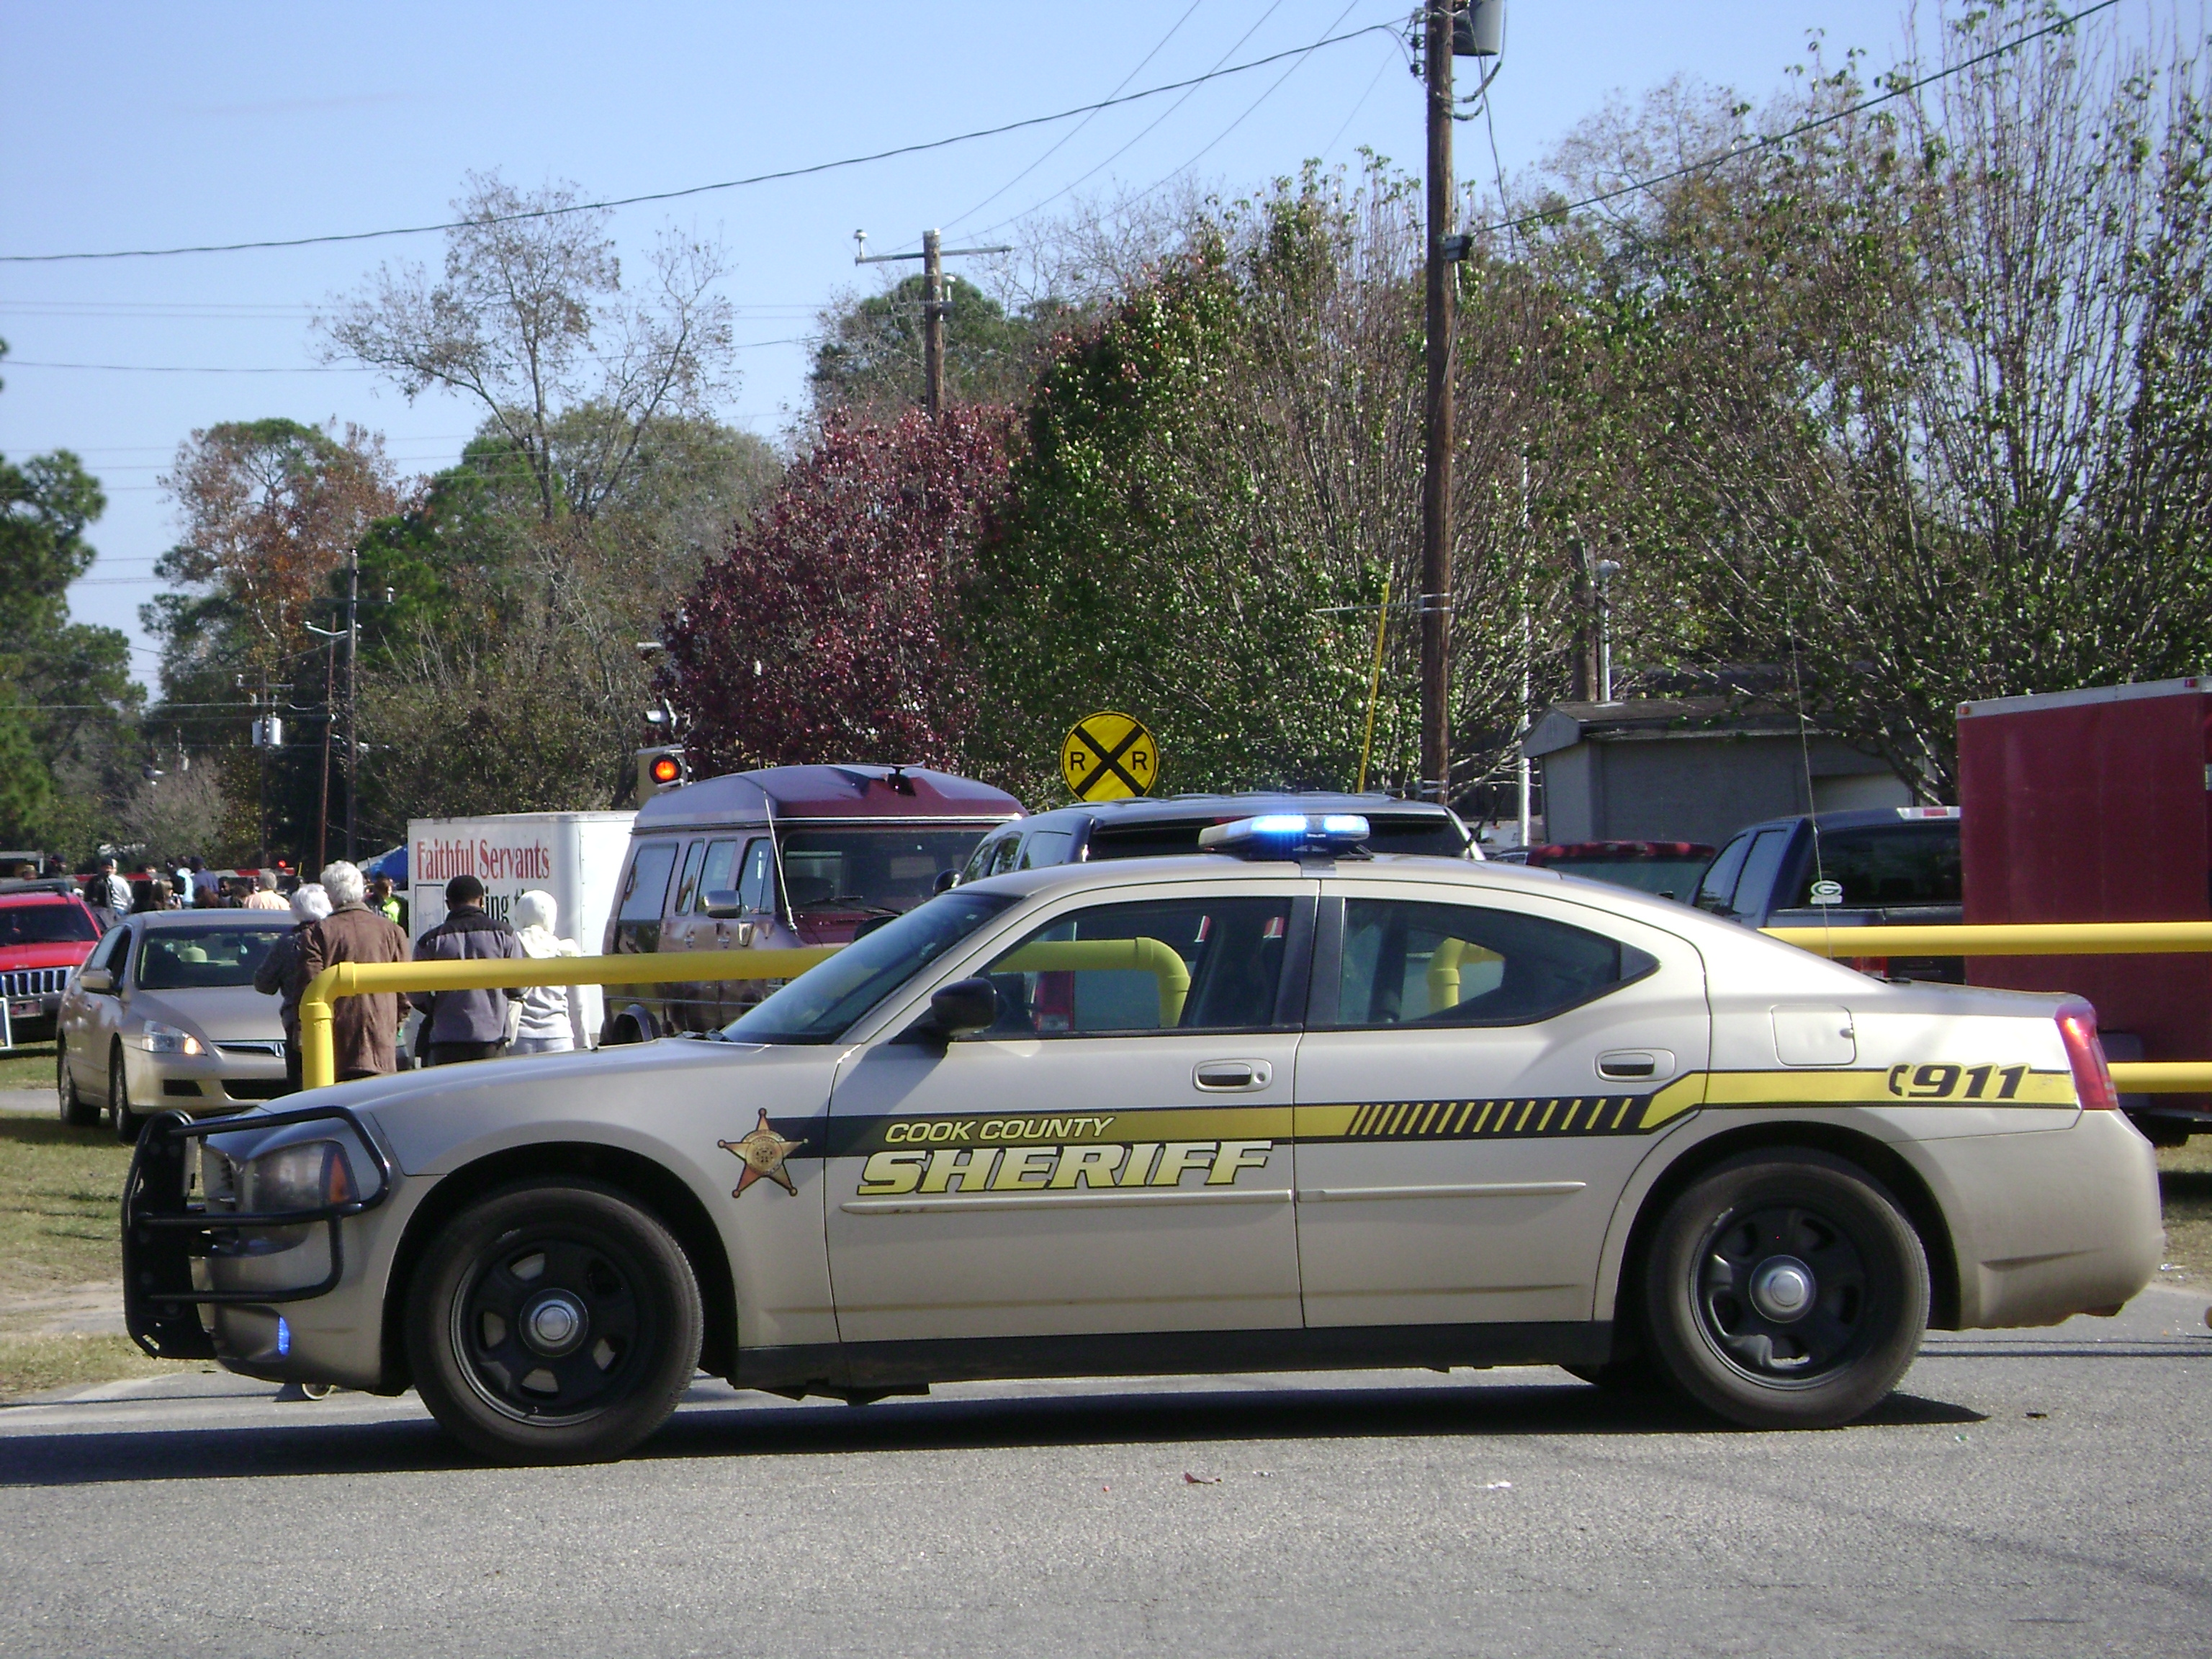 Cook County Sheriff Car Uin Wikipedia